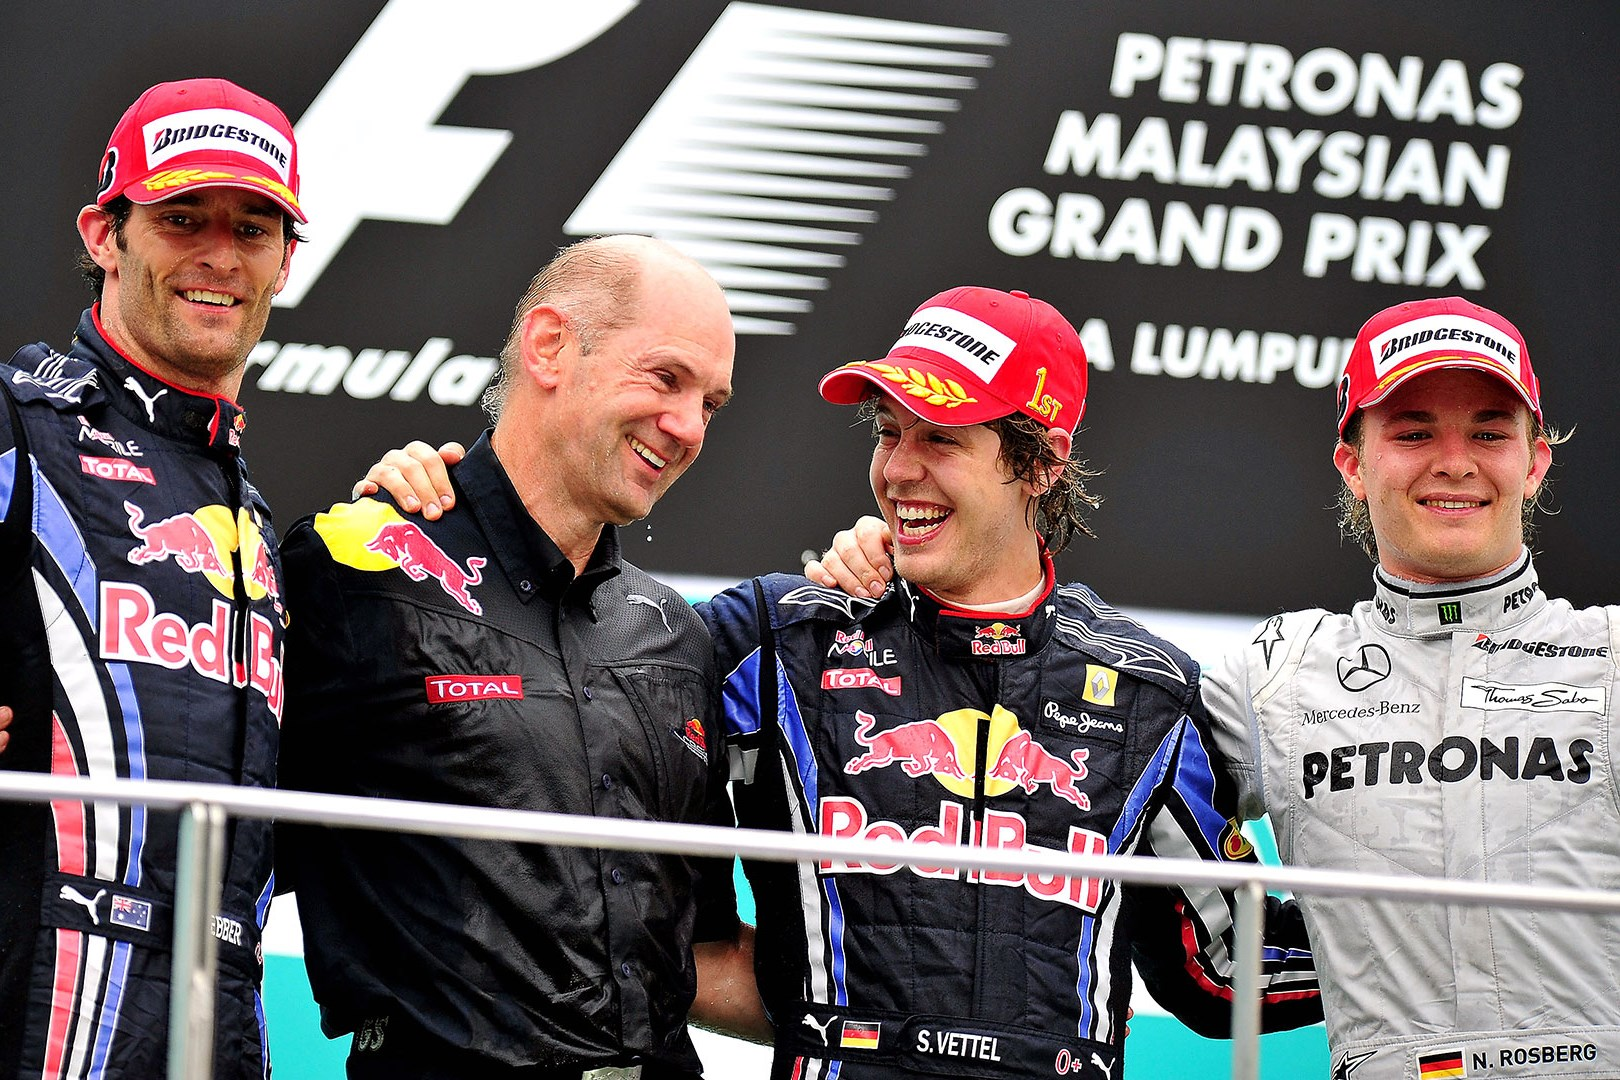 malaysian-gp-f1-2010-podium-celebration-vettel-webber-rosberg-newey-foto-f1fansite